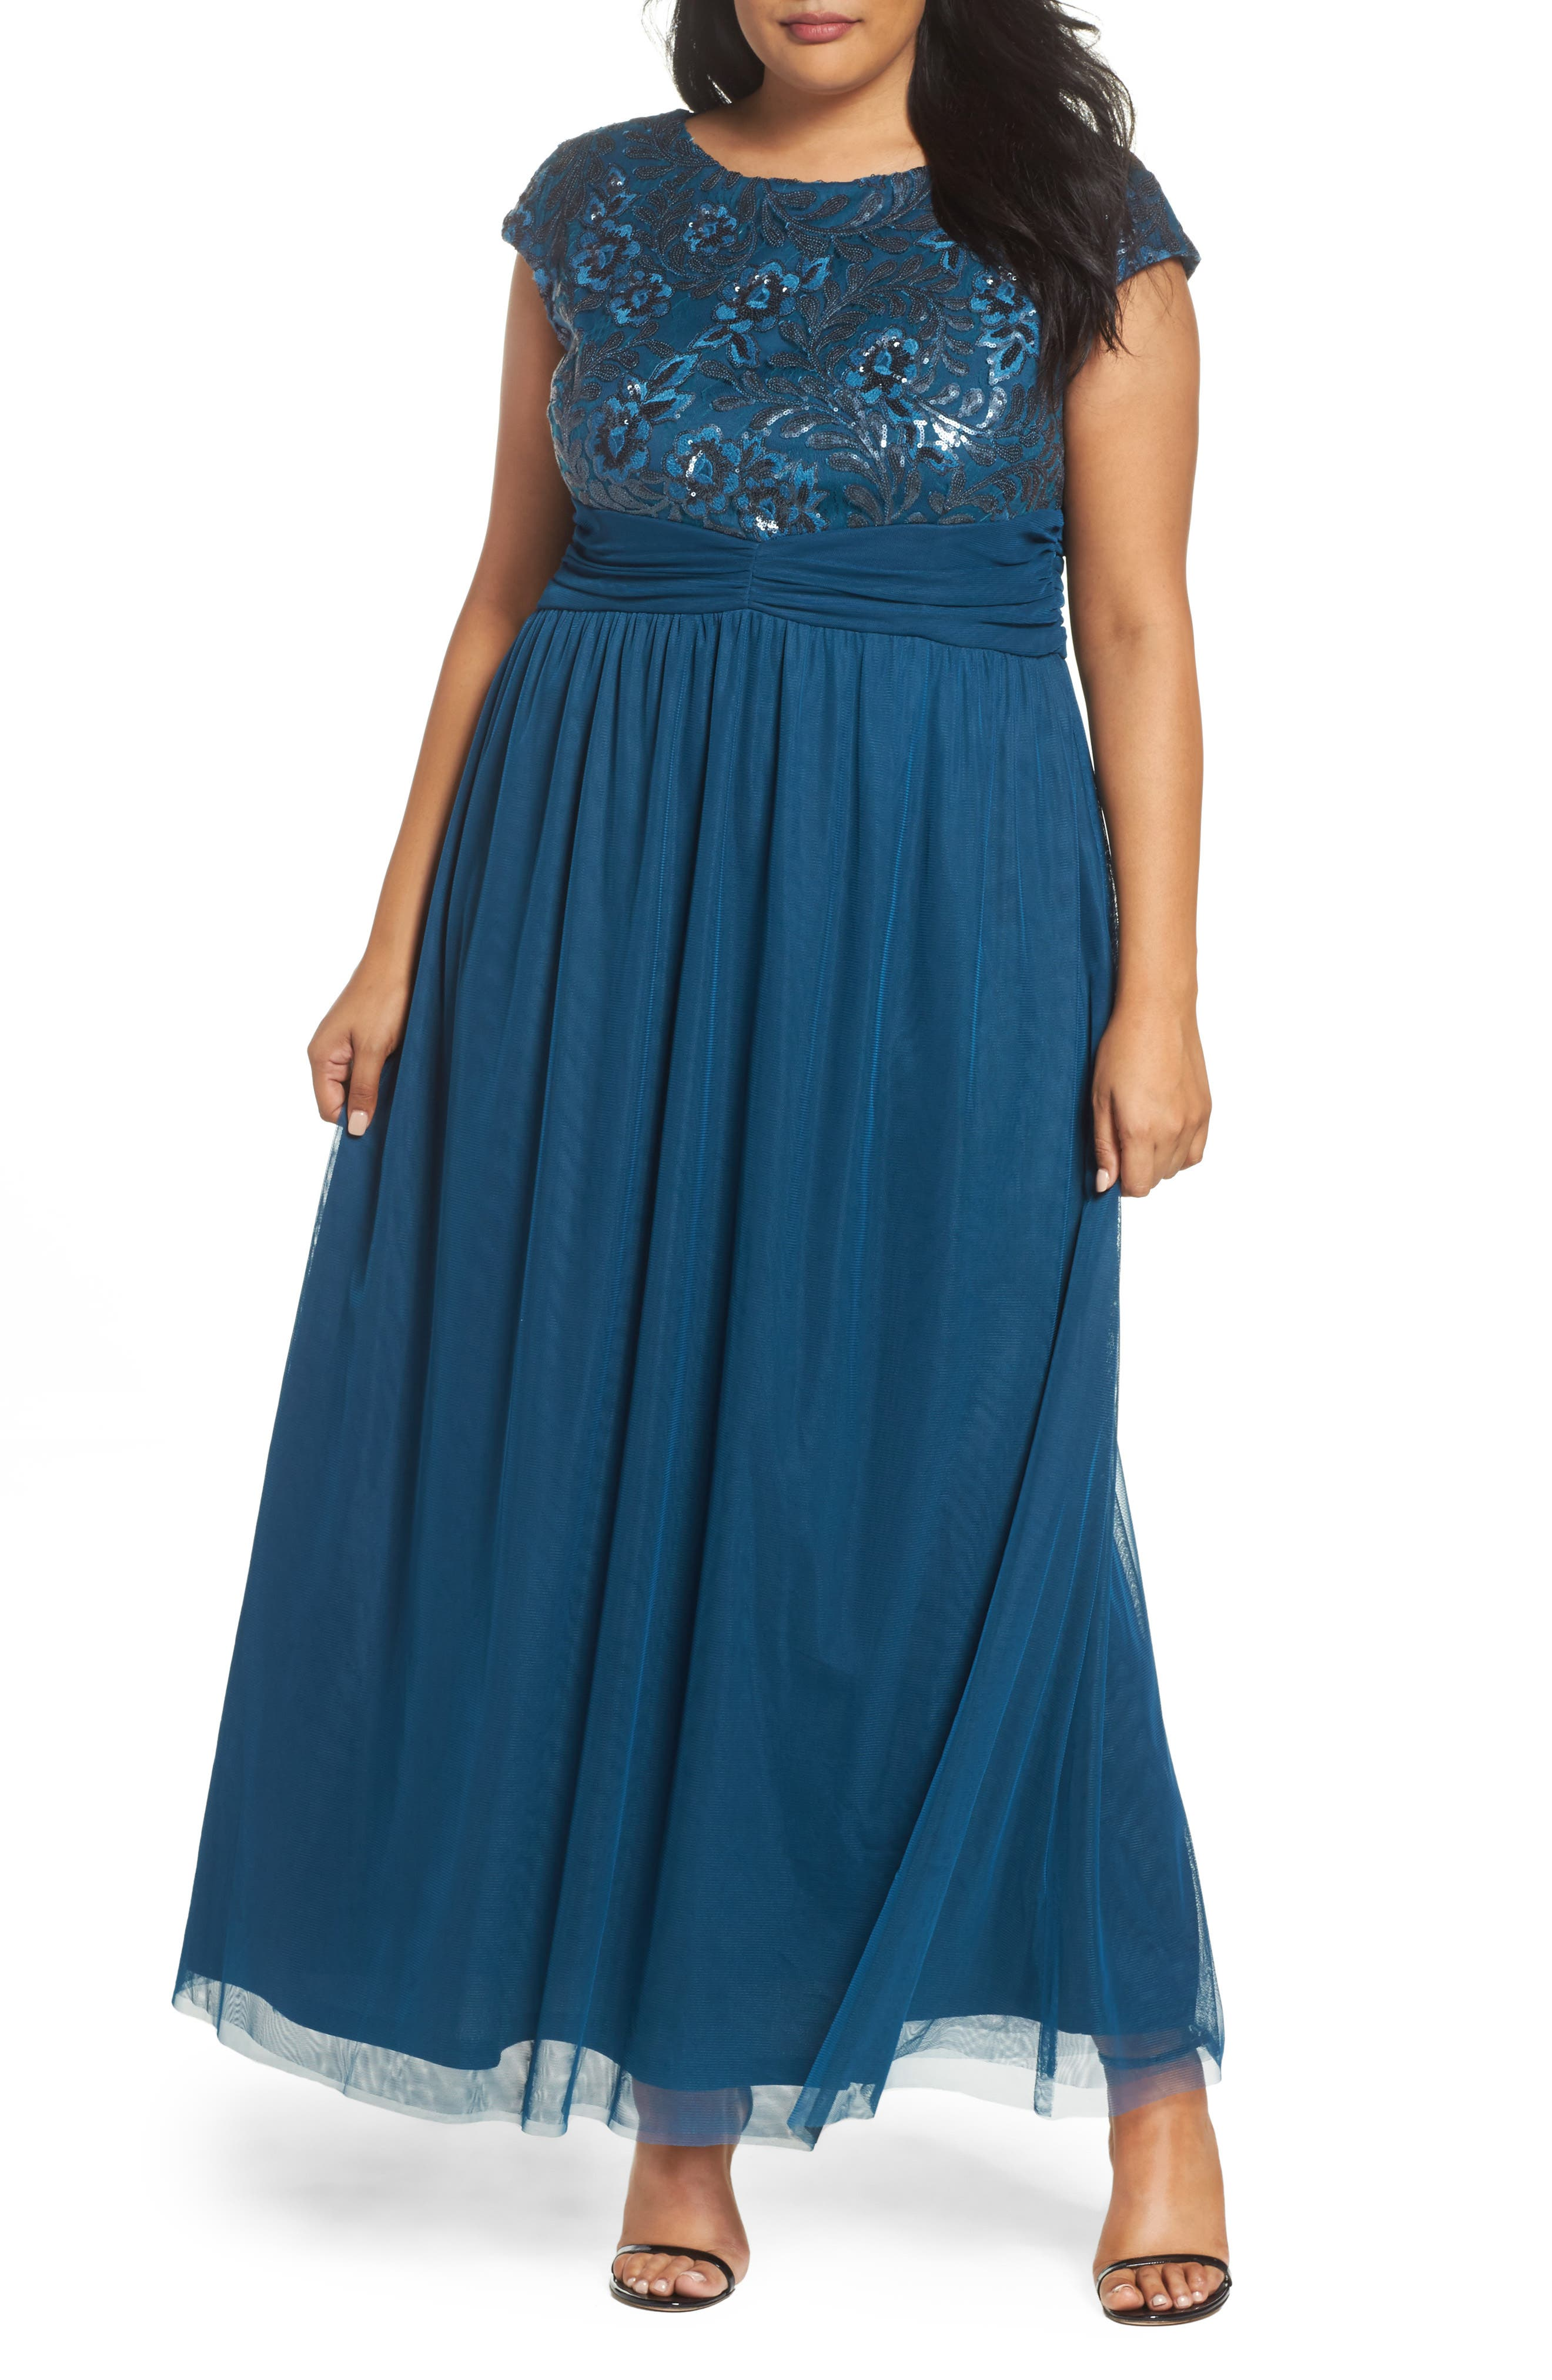 Alternate Image 1 Selected - Brianna Embellished Cap Sleeve Gown (Plus Size)